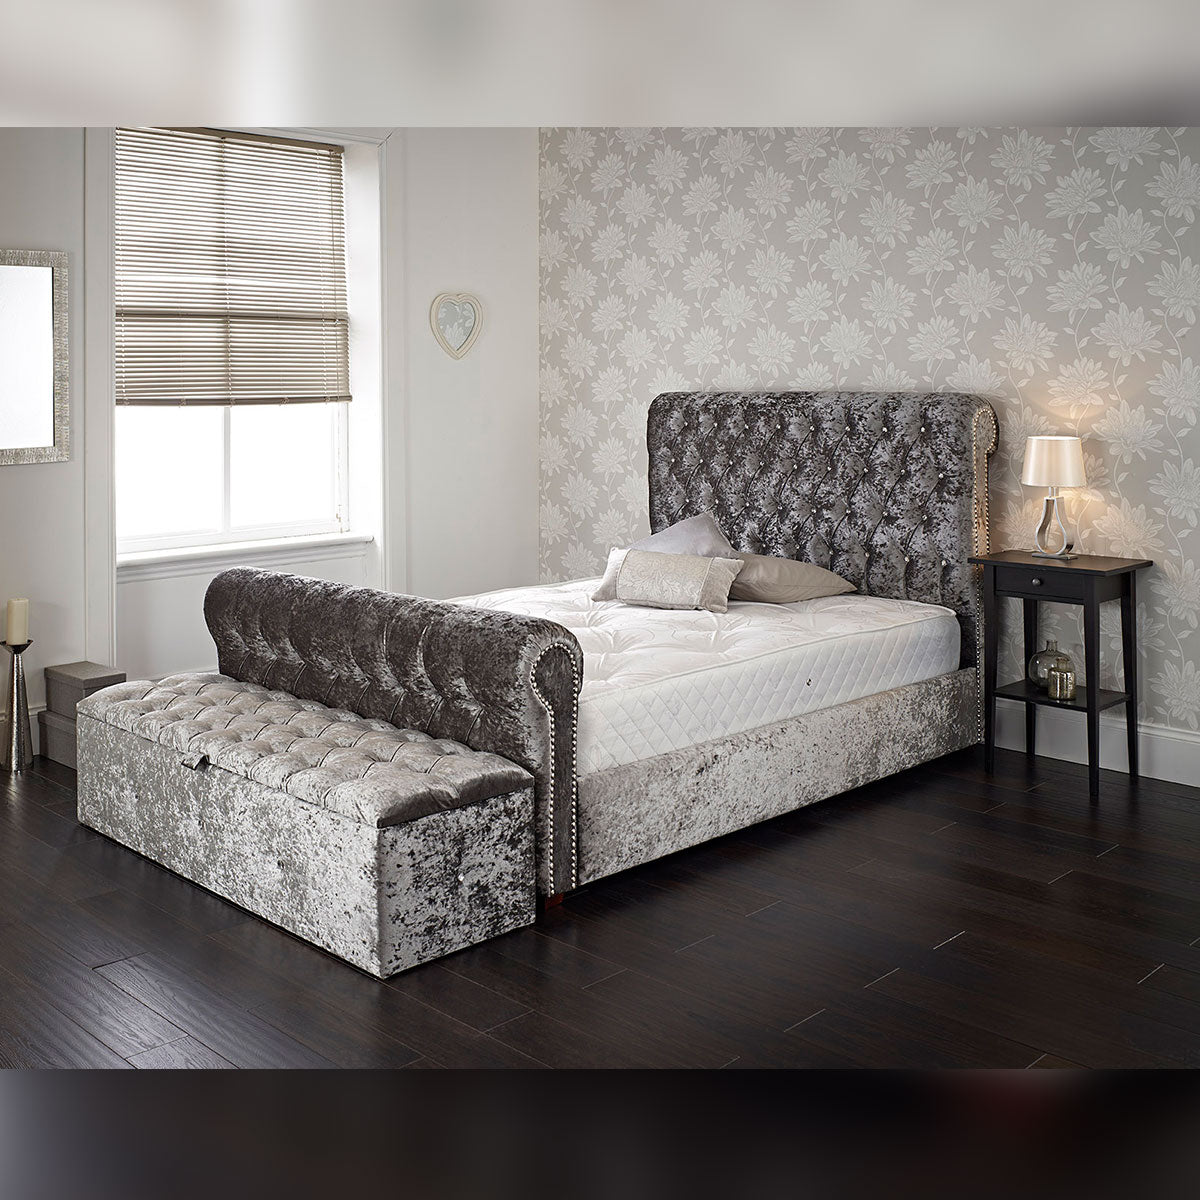 Louisa Single 3' Bed